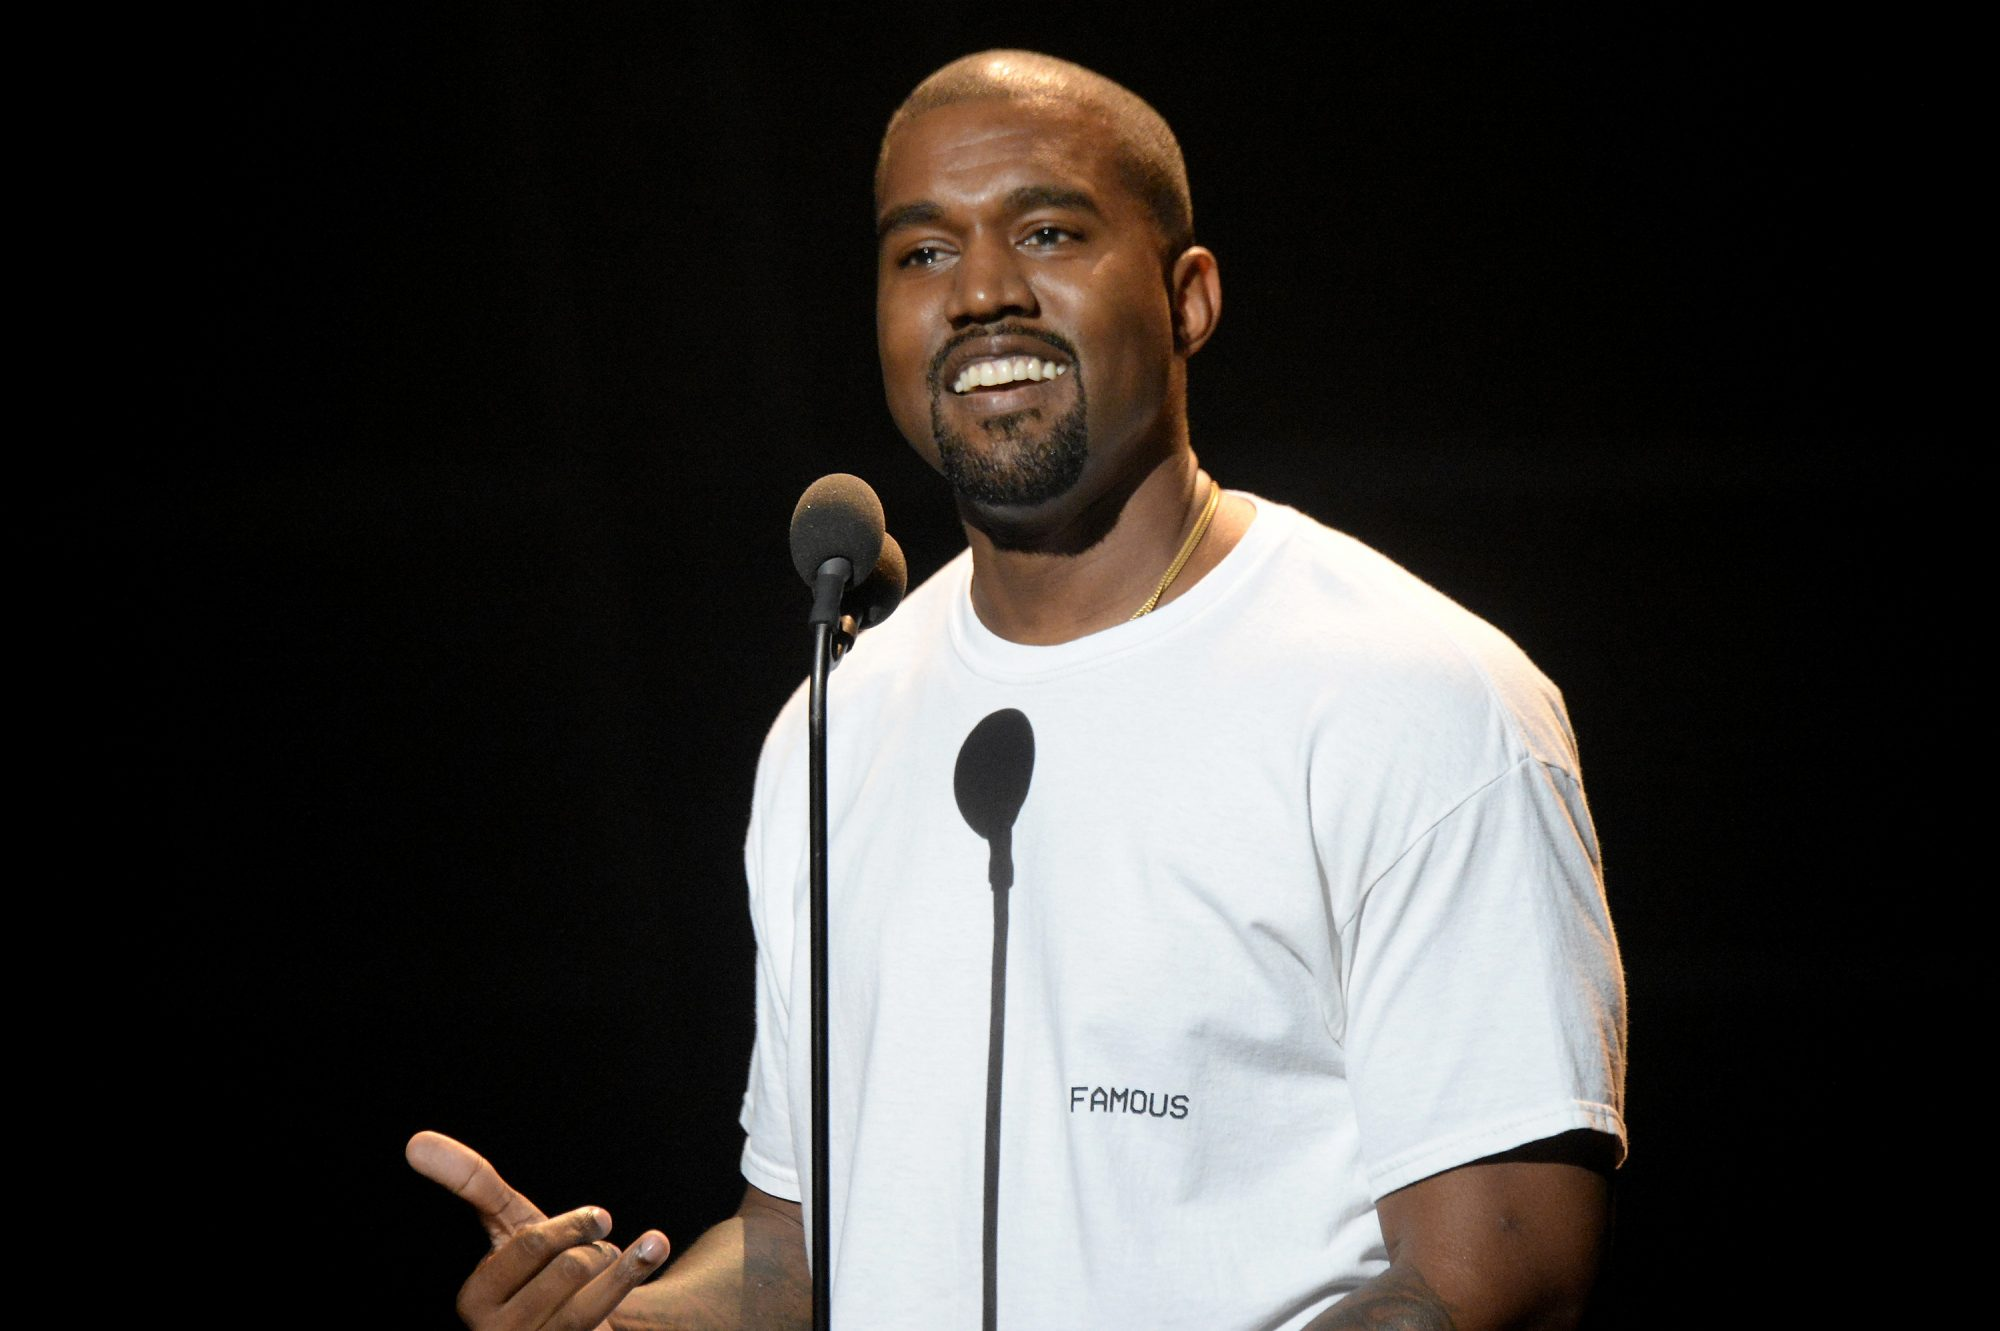 Picture of Kanye West Famous T-shirt